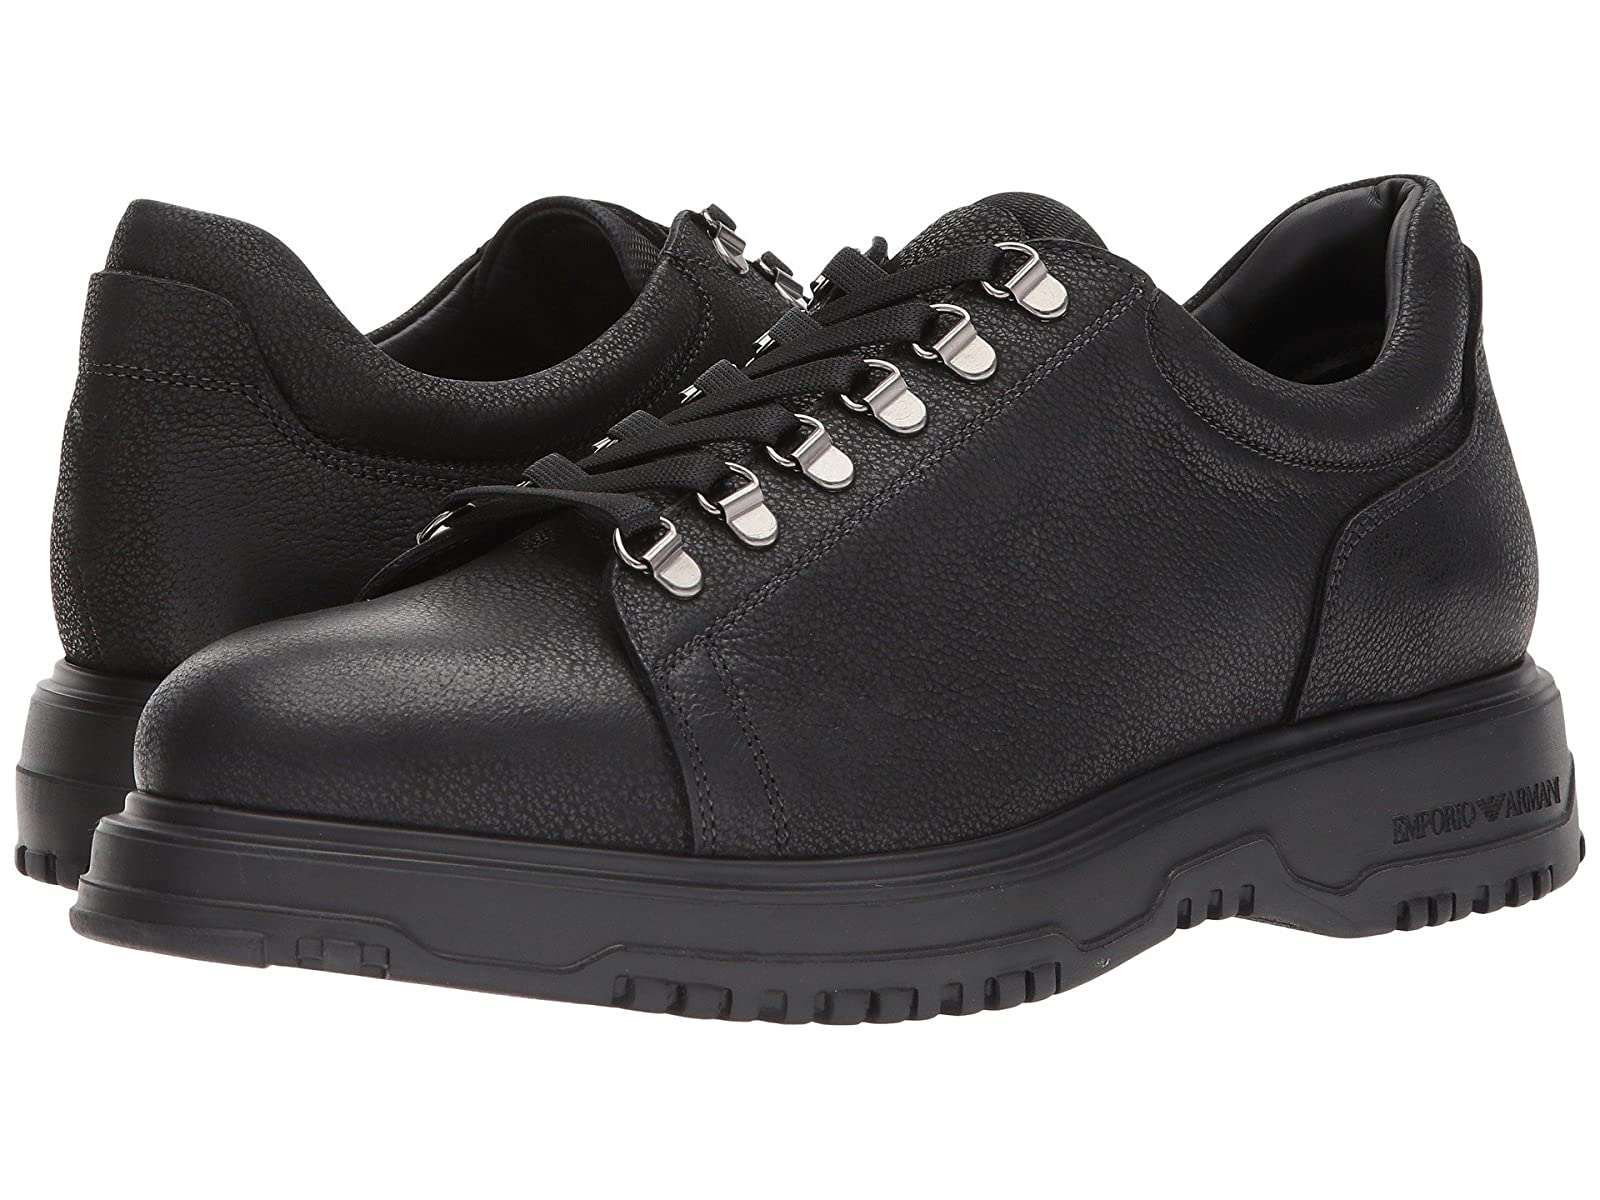 Emporio Armani Hiker OxfordCheap and distinctive eye-catching shoes